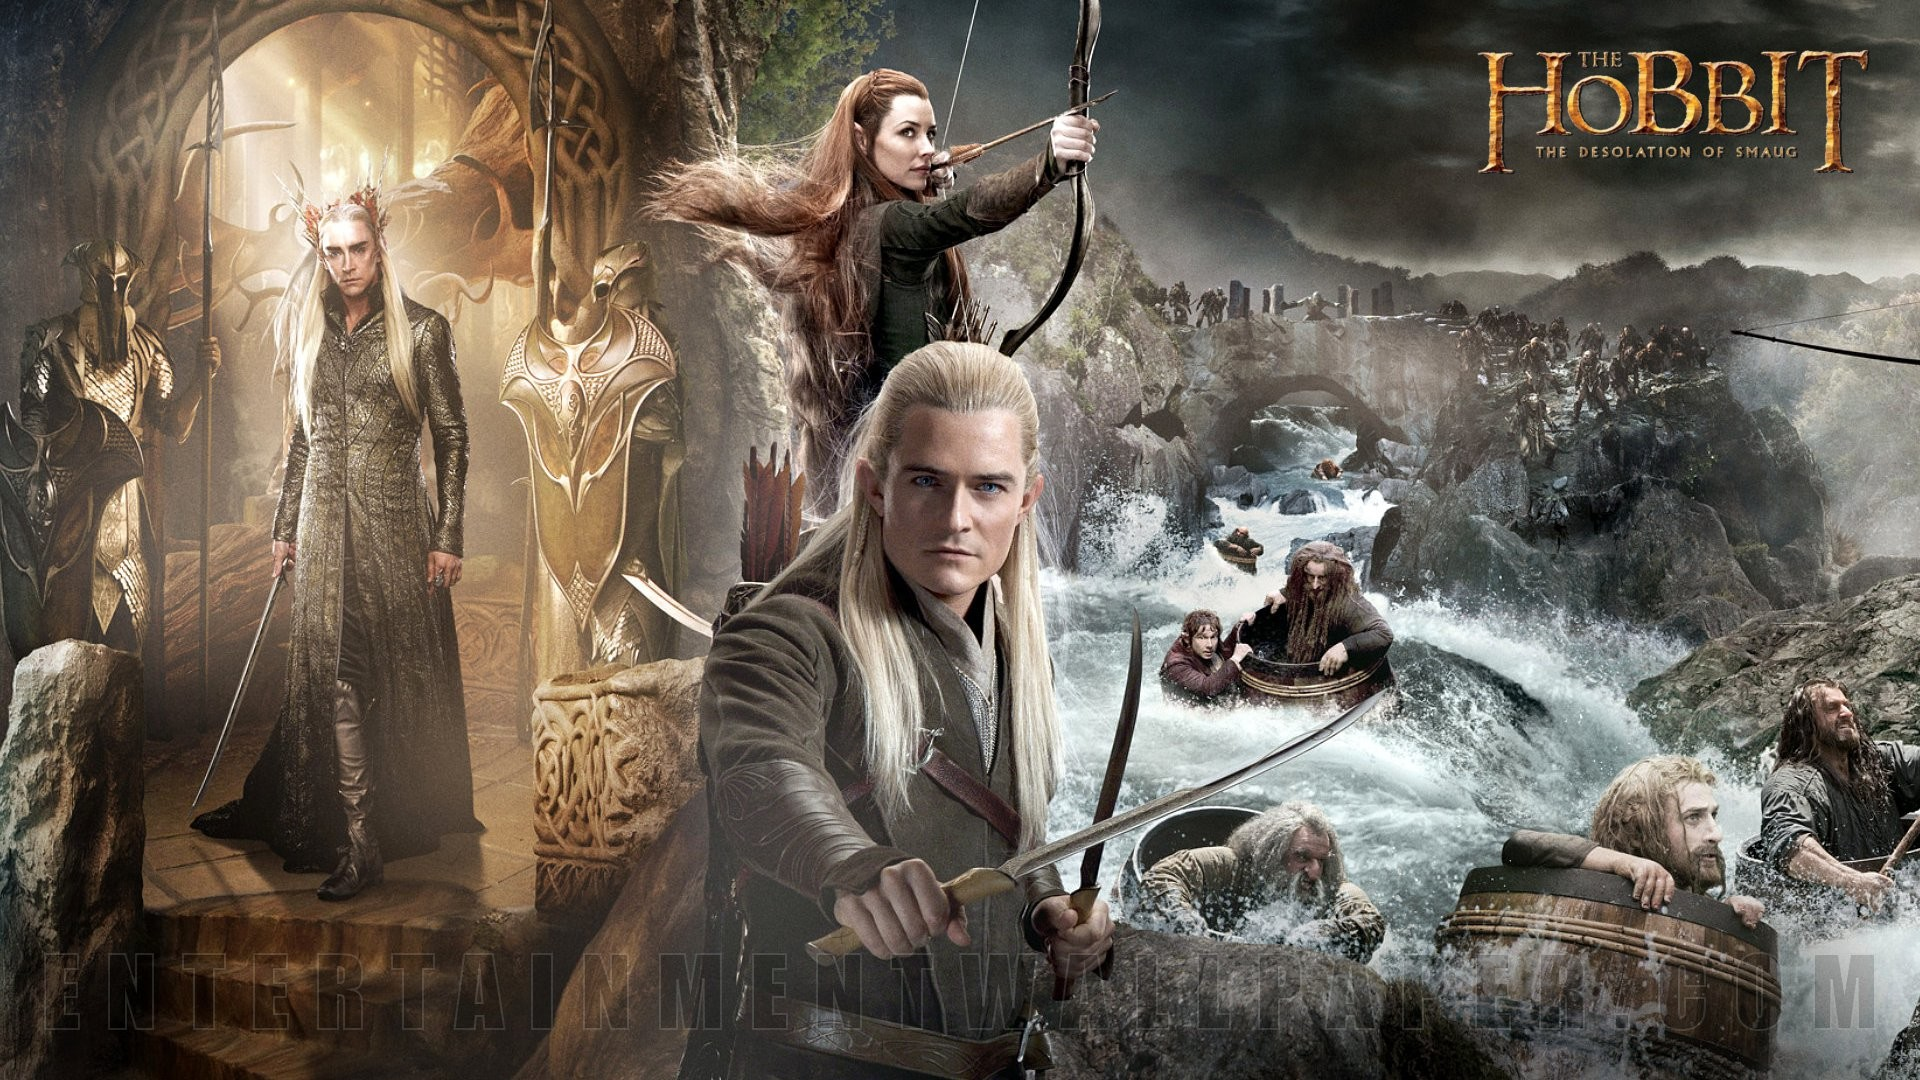 1920x1080 The Hobbit: The Desolation of Smaug Wallpaper HD